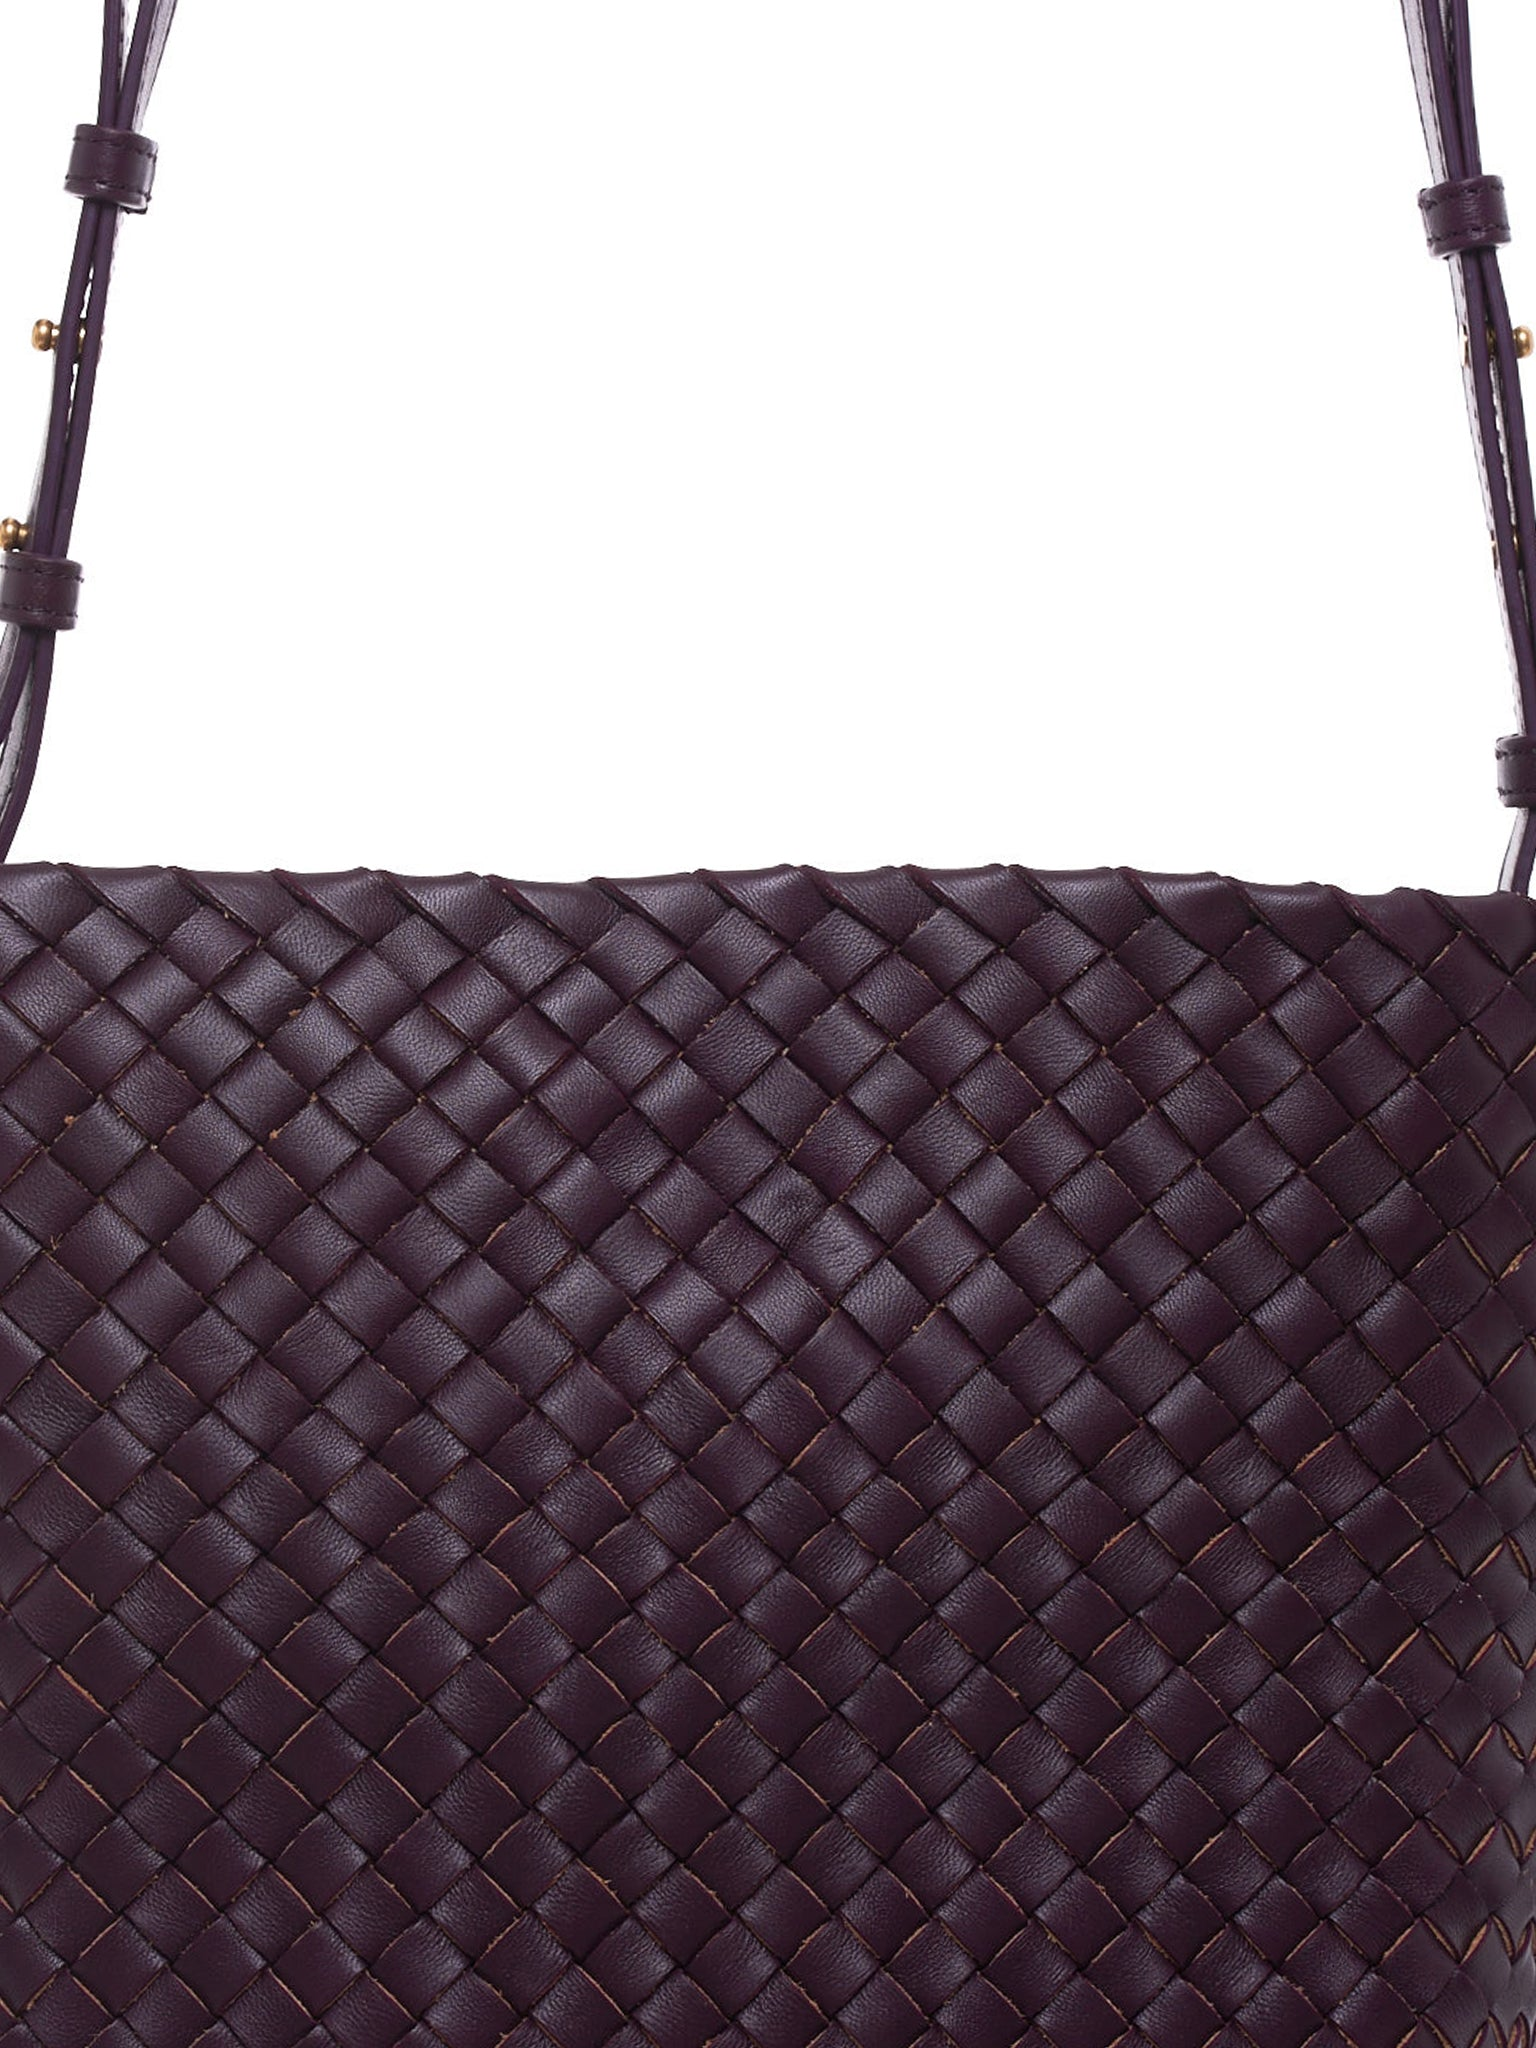 Bottega Veneta Bag - Hlorenzo Detail 2